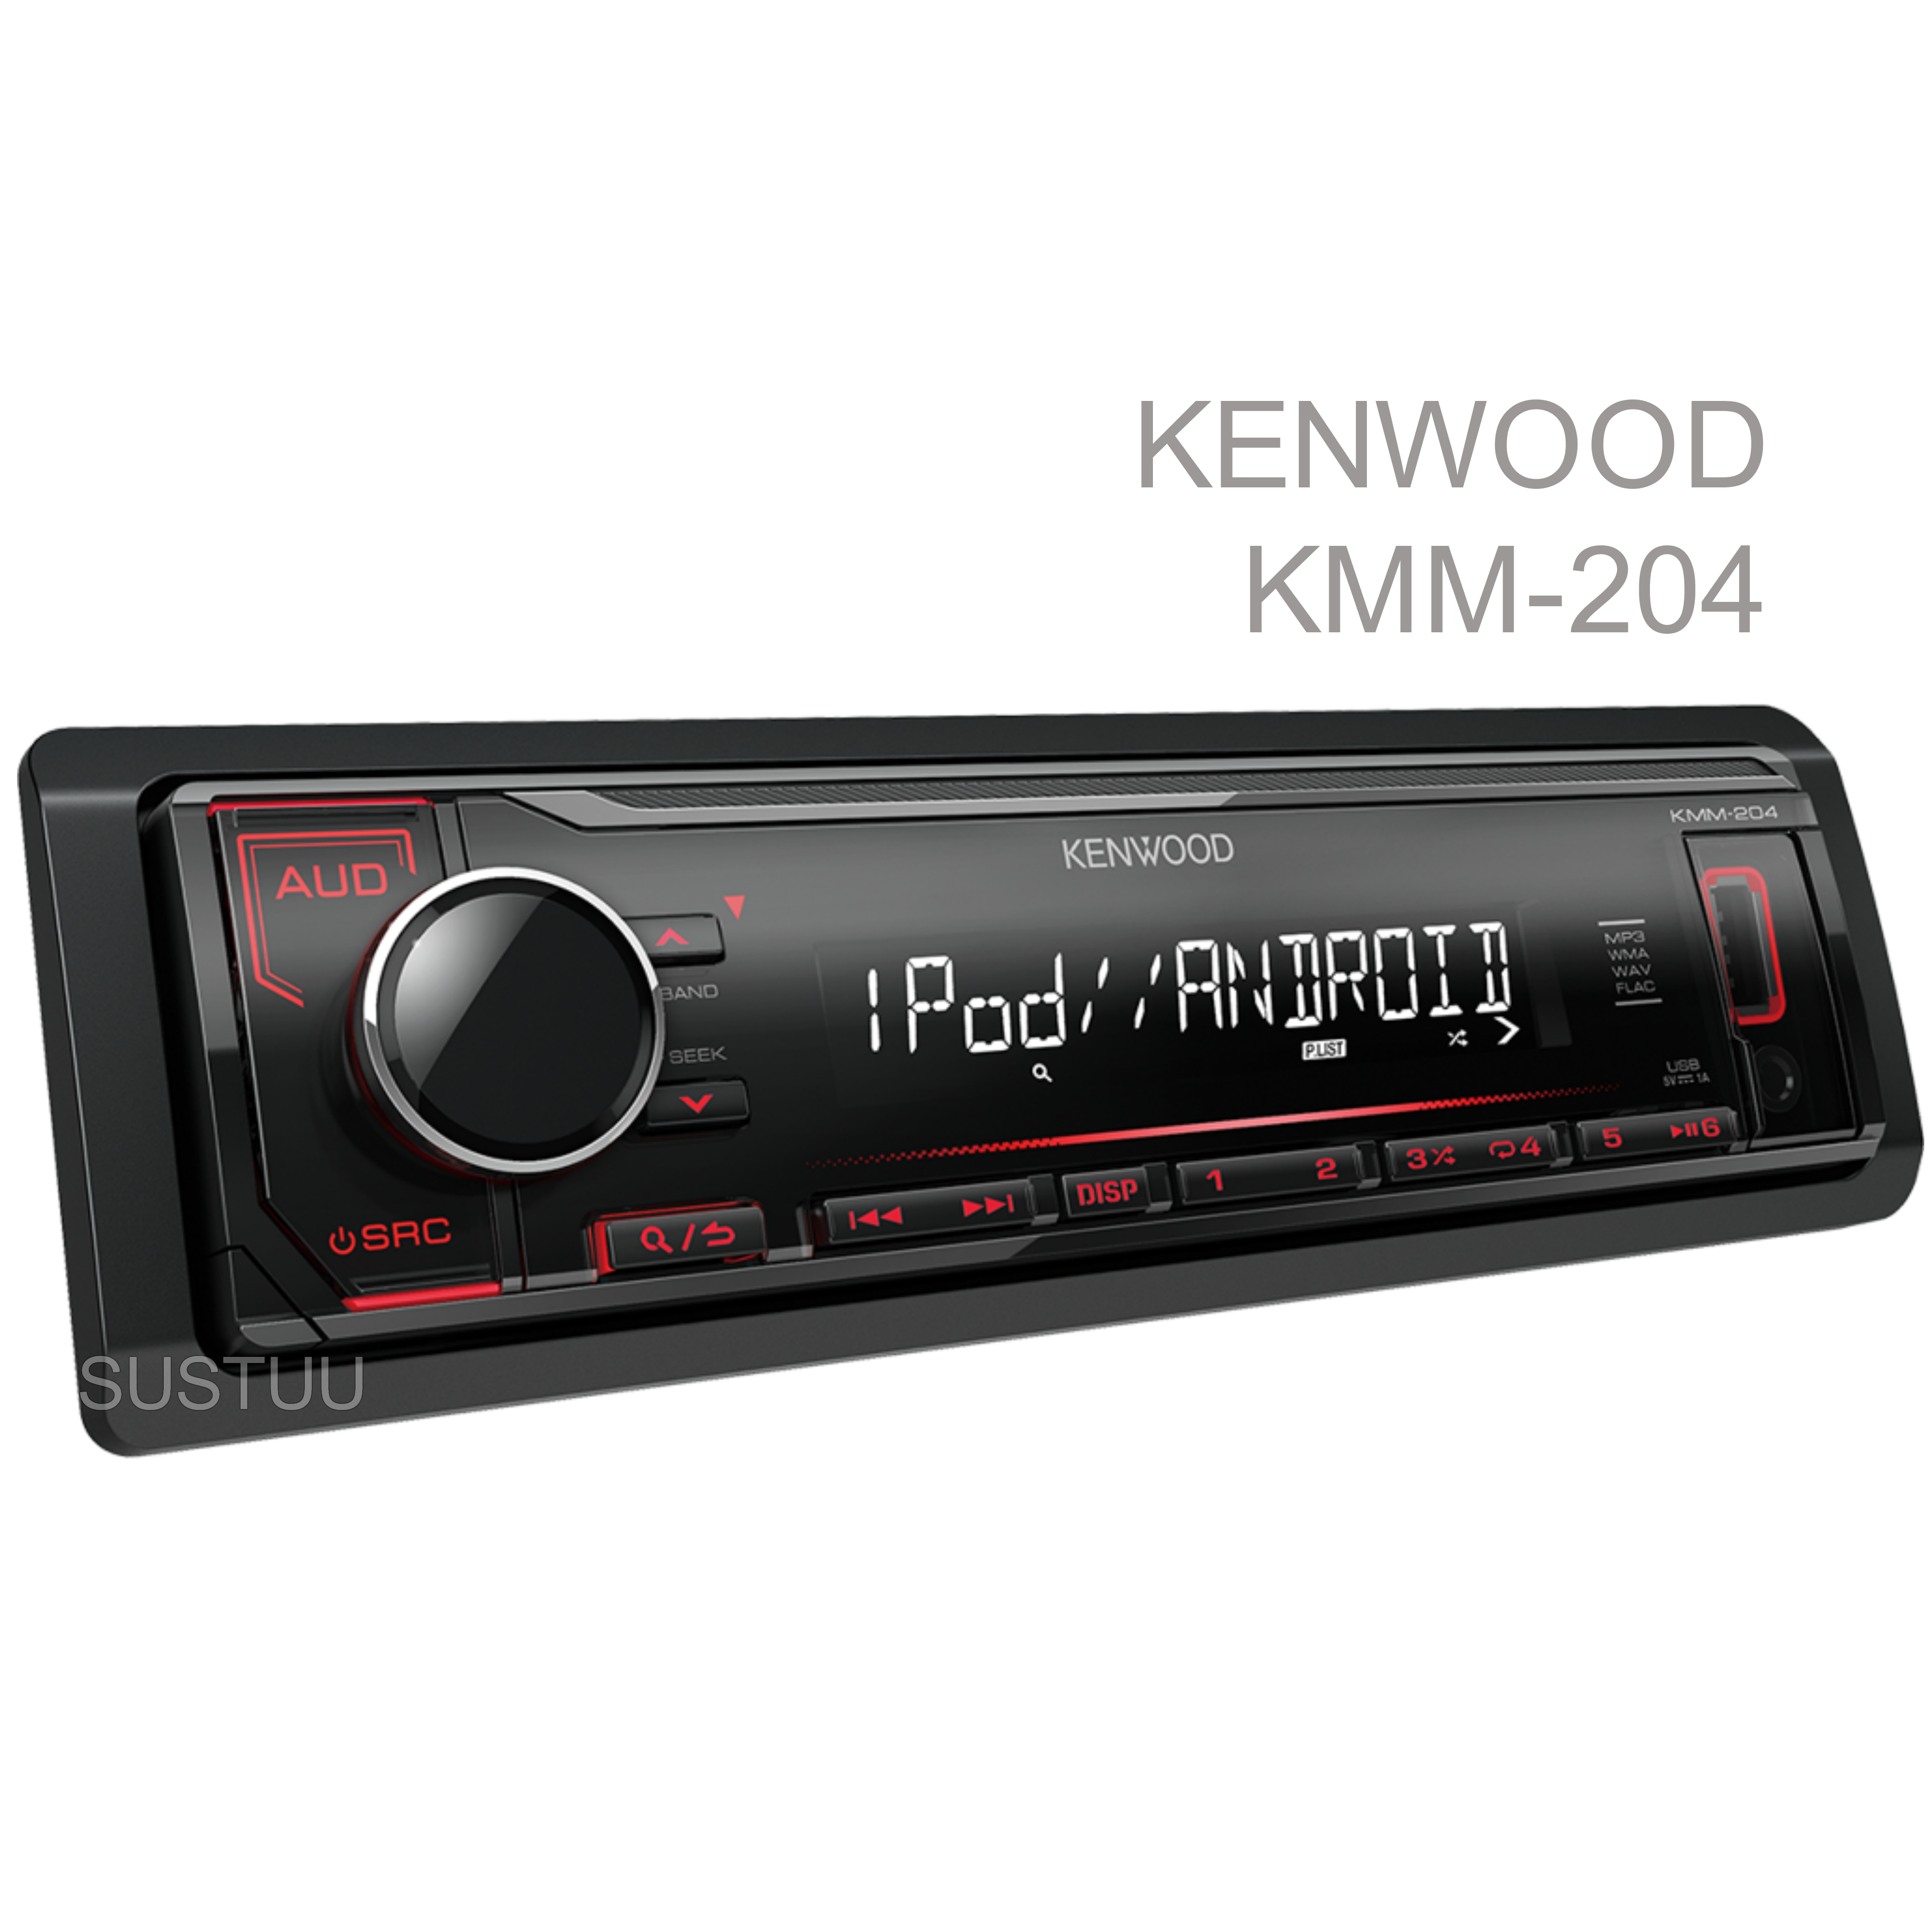 Kenwood Car Media Stereo|Mechless Radio|USB|AUX|iPod-iPhone-Android|Red Illumination